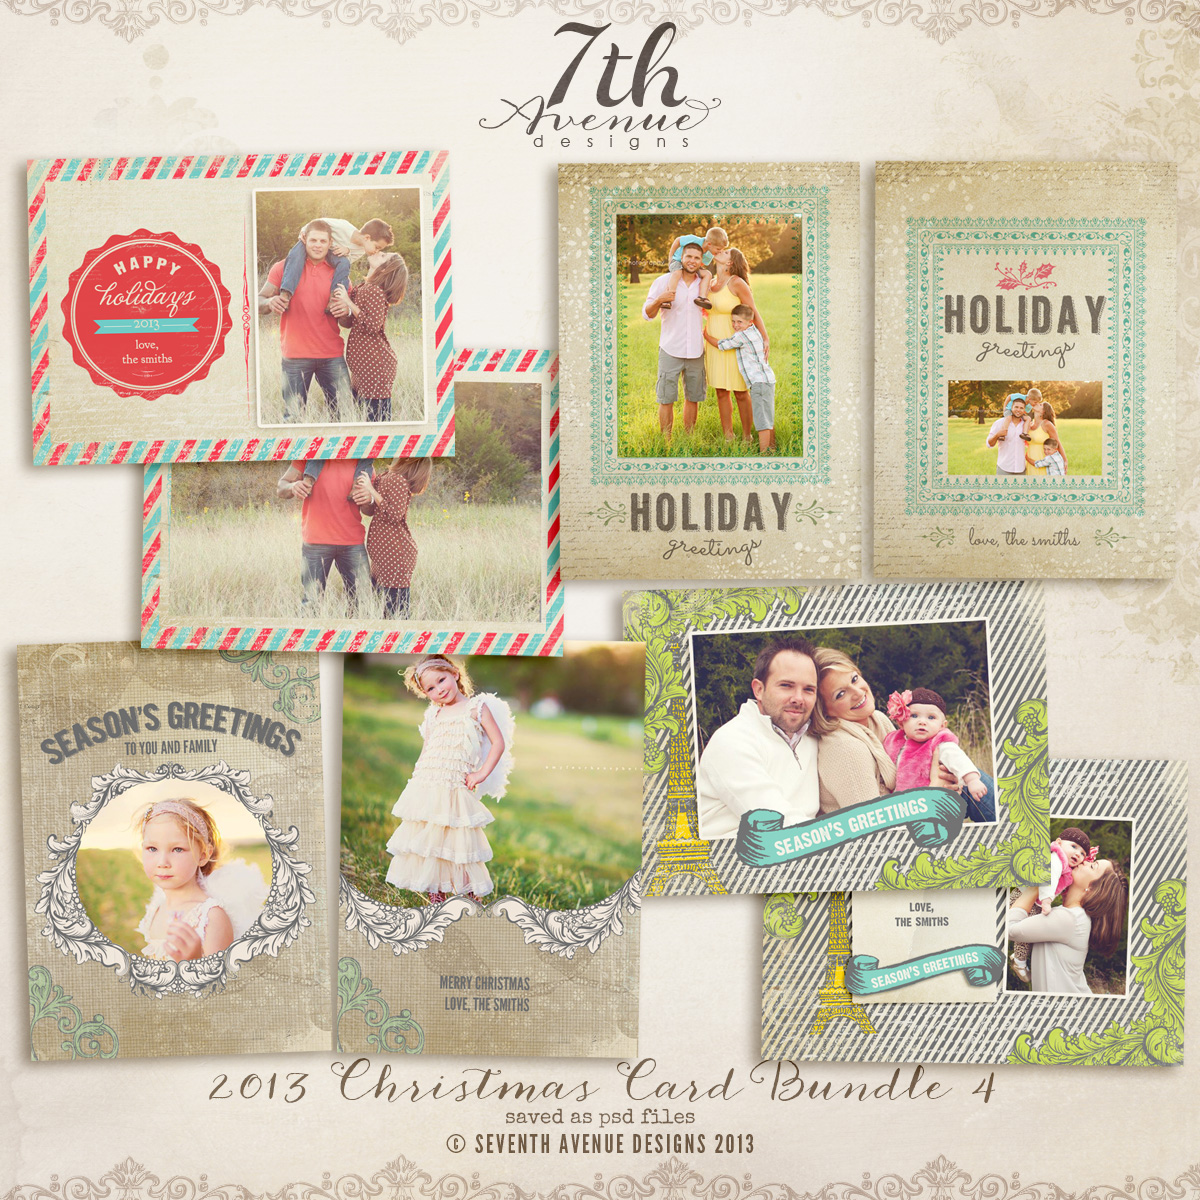 2013 Christmas Card Templates Bundle 4